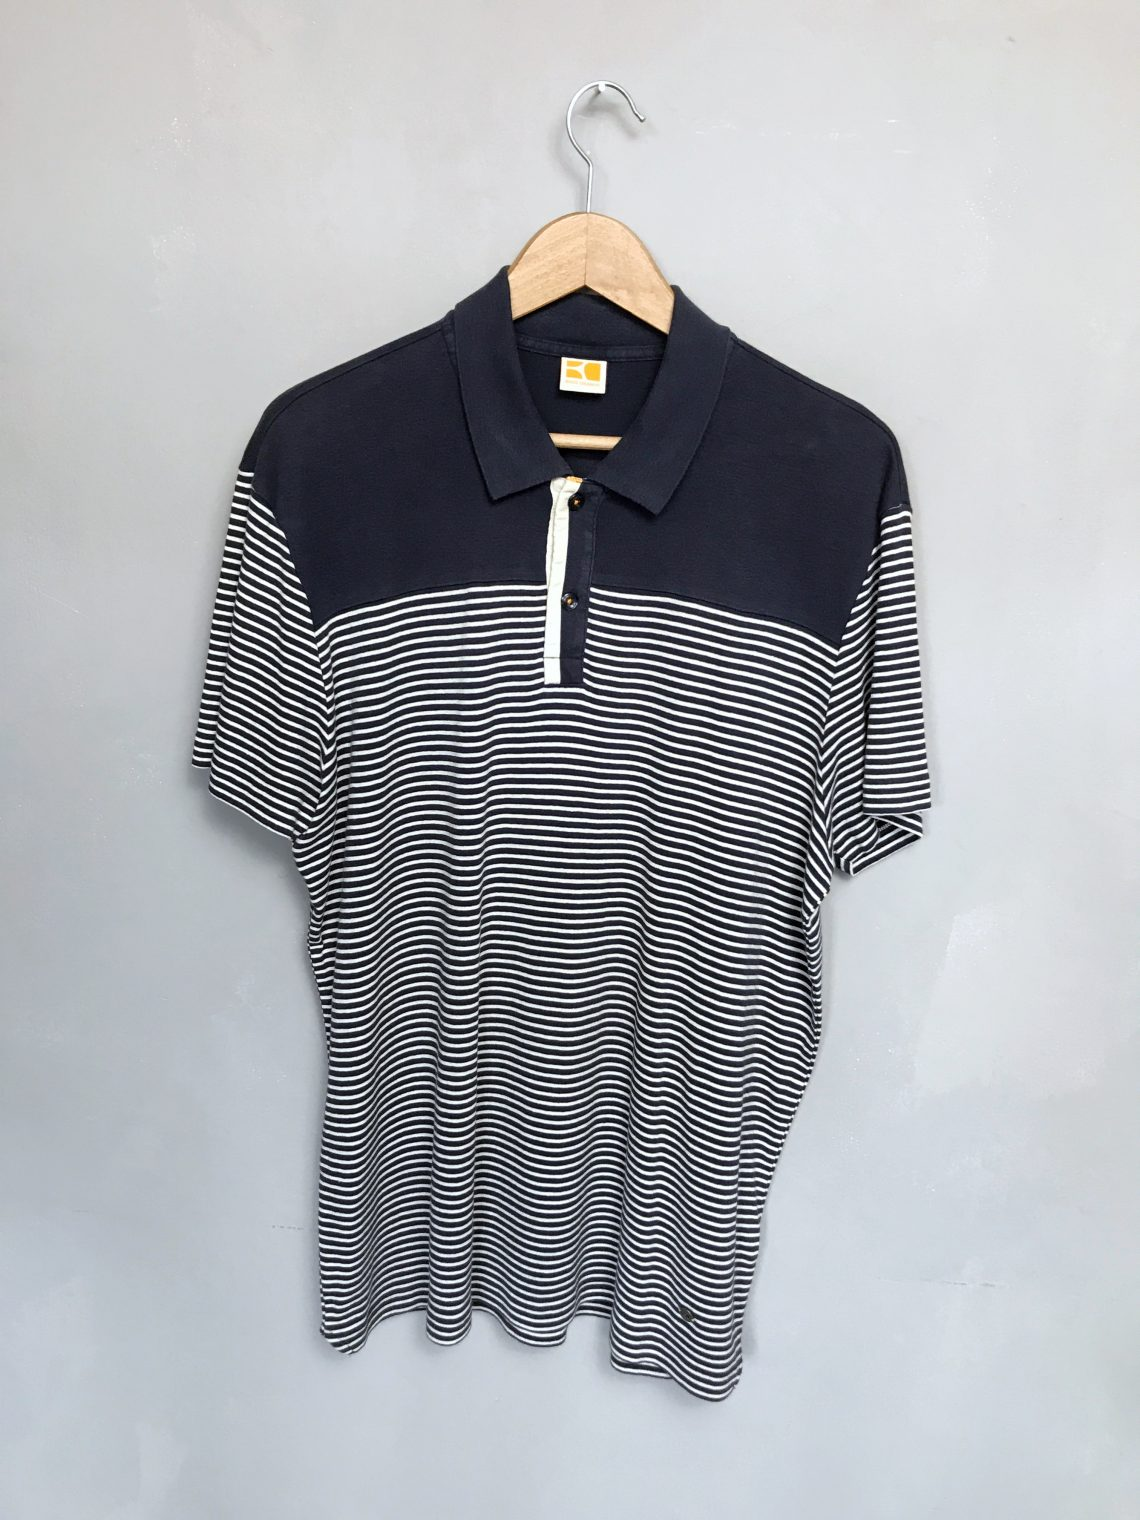 BOSS ORANGE Poloshirt stripes gestreift Polo